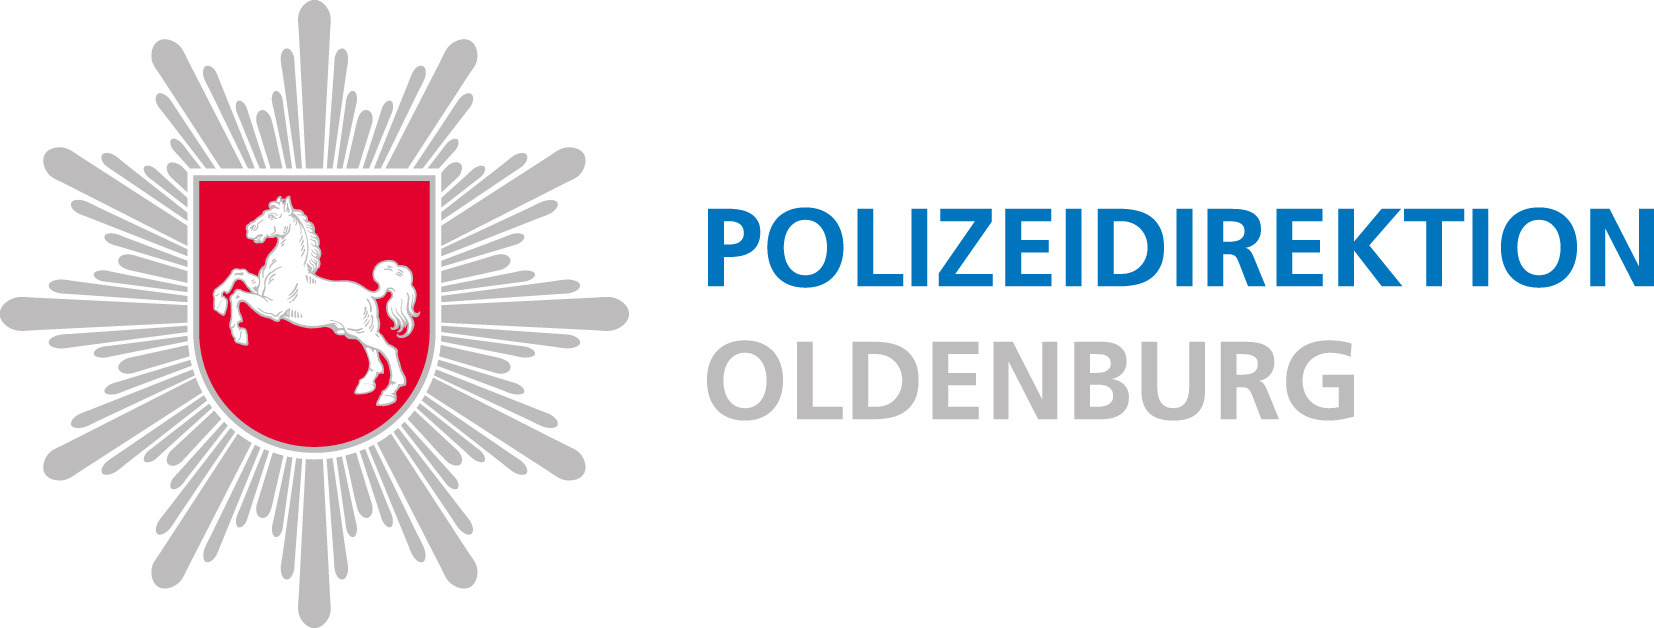 Wortbildmarke Polizeidirektion Oldenburg